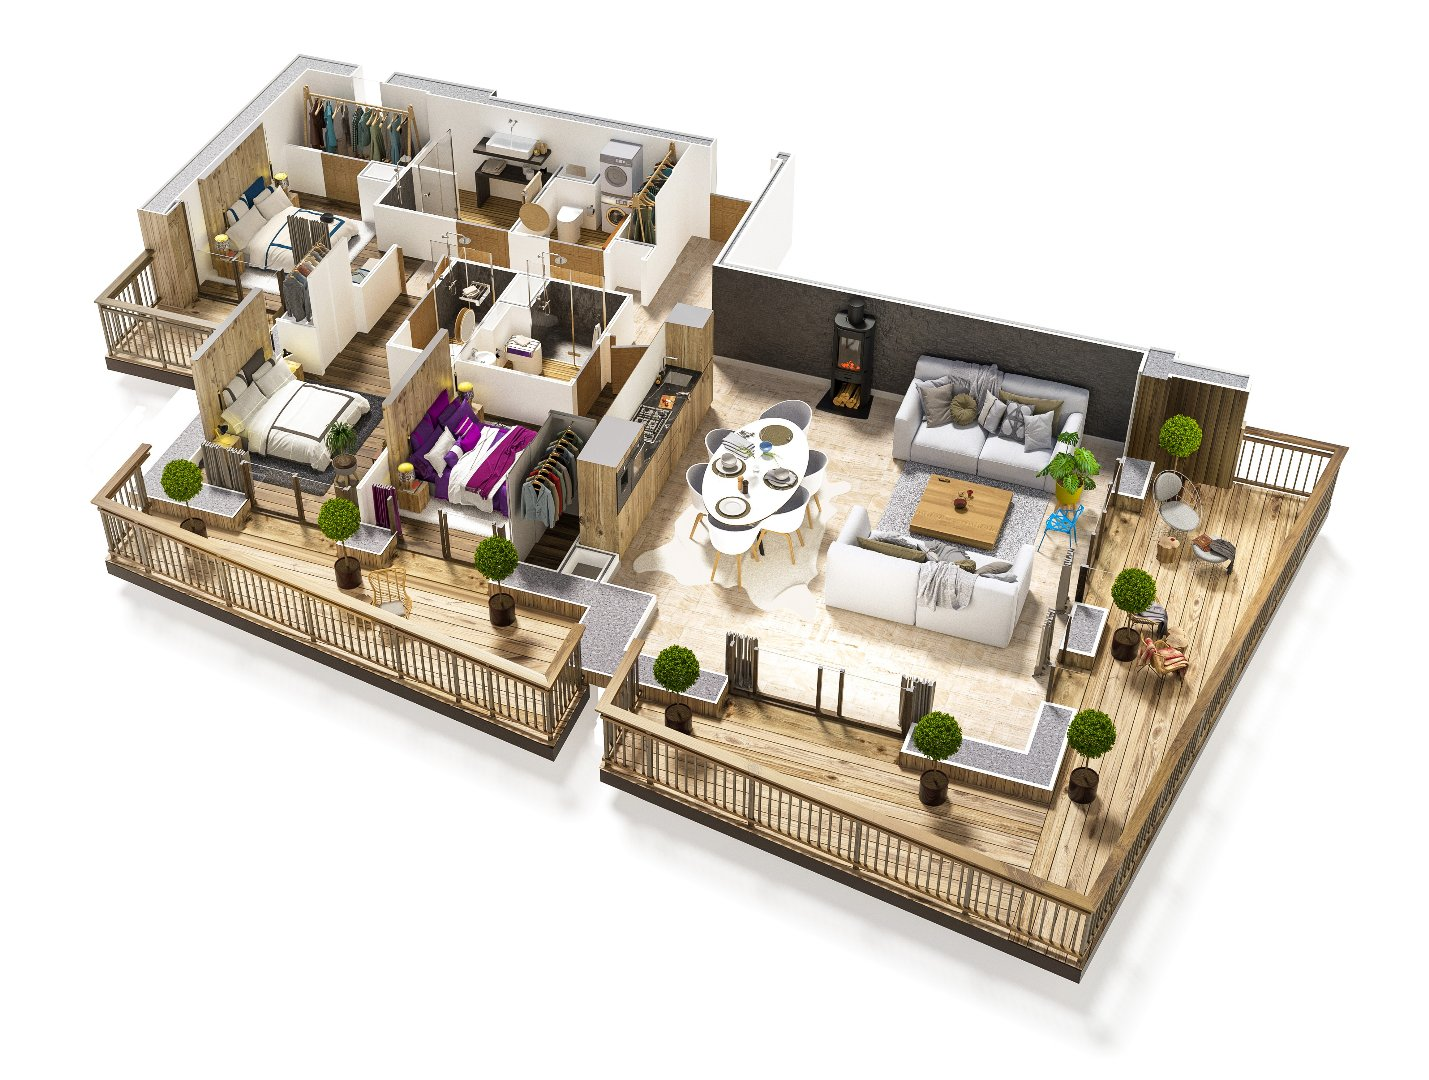 Programme neuf LE PALAIS DES DODES - 3 bedroom apartment Accommodation in Champagny